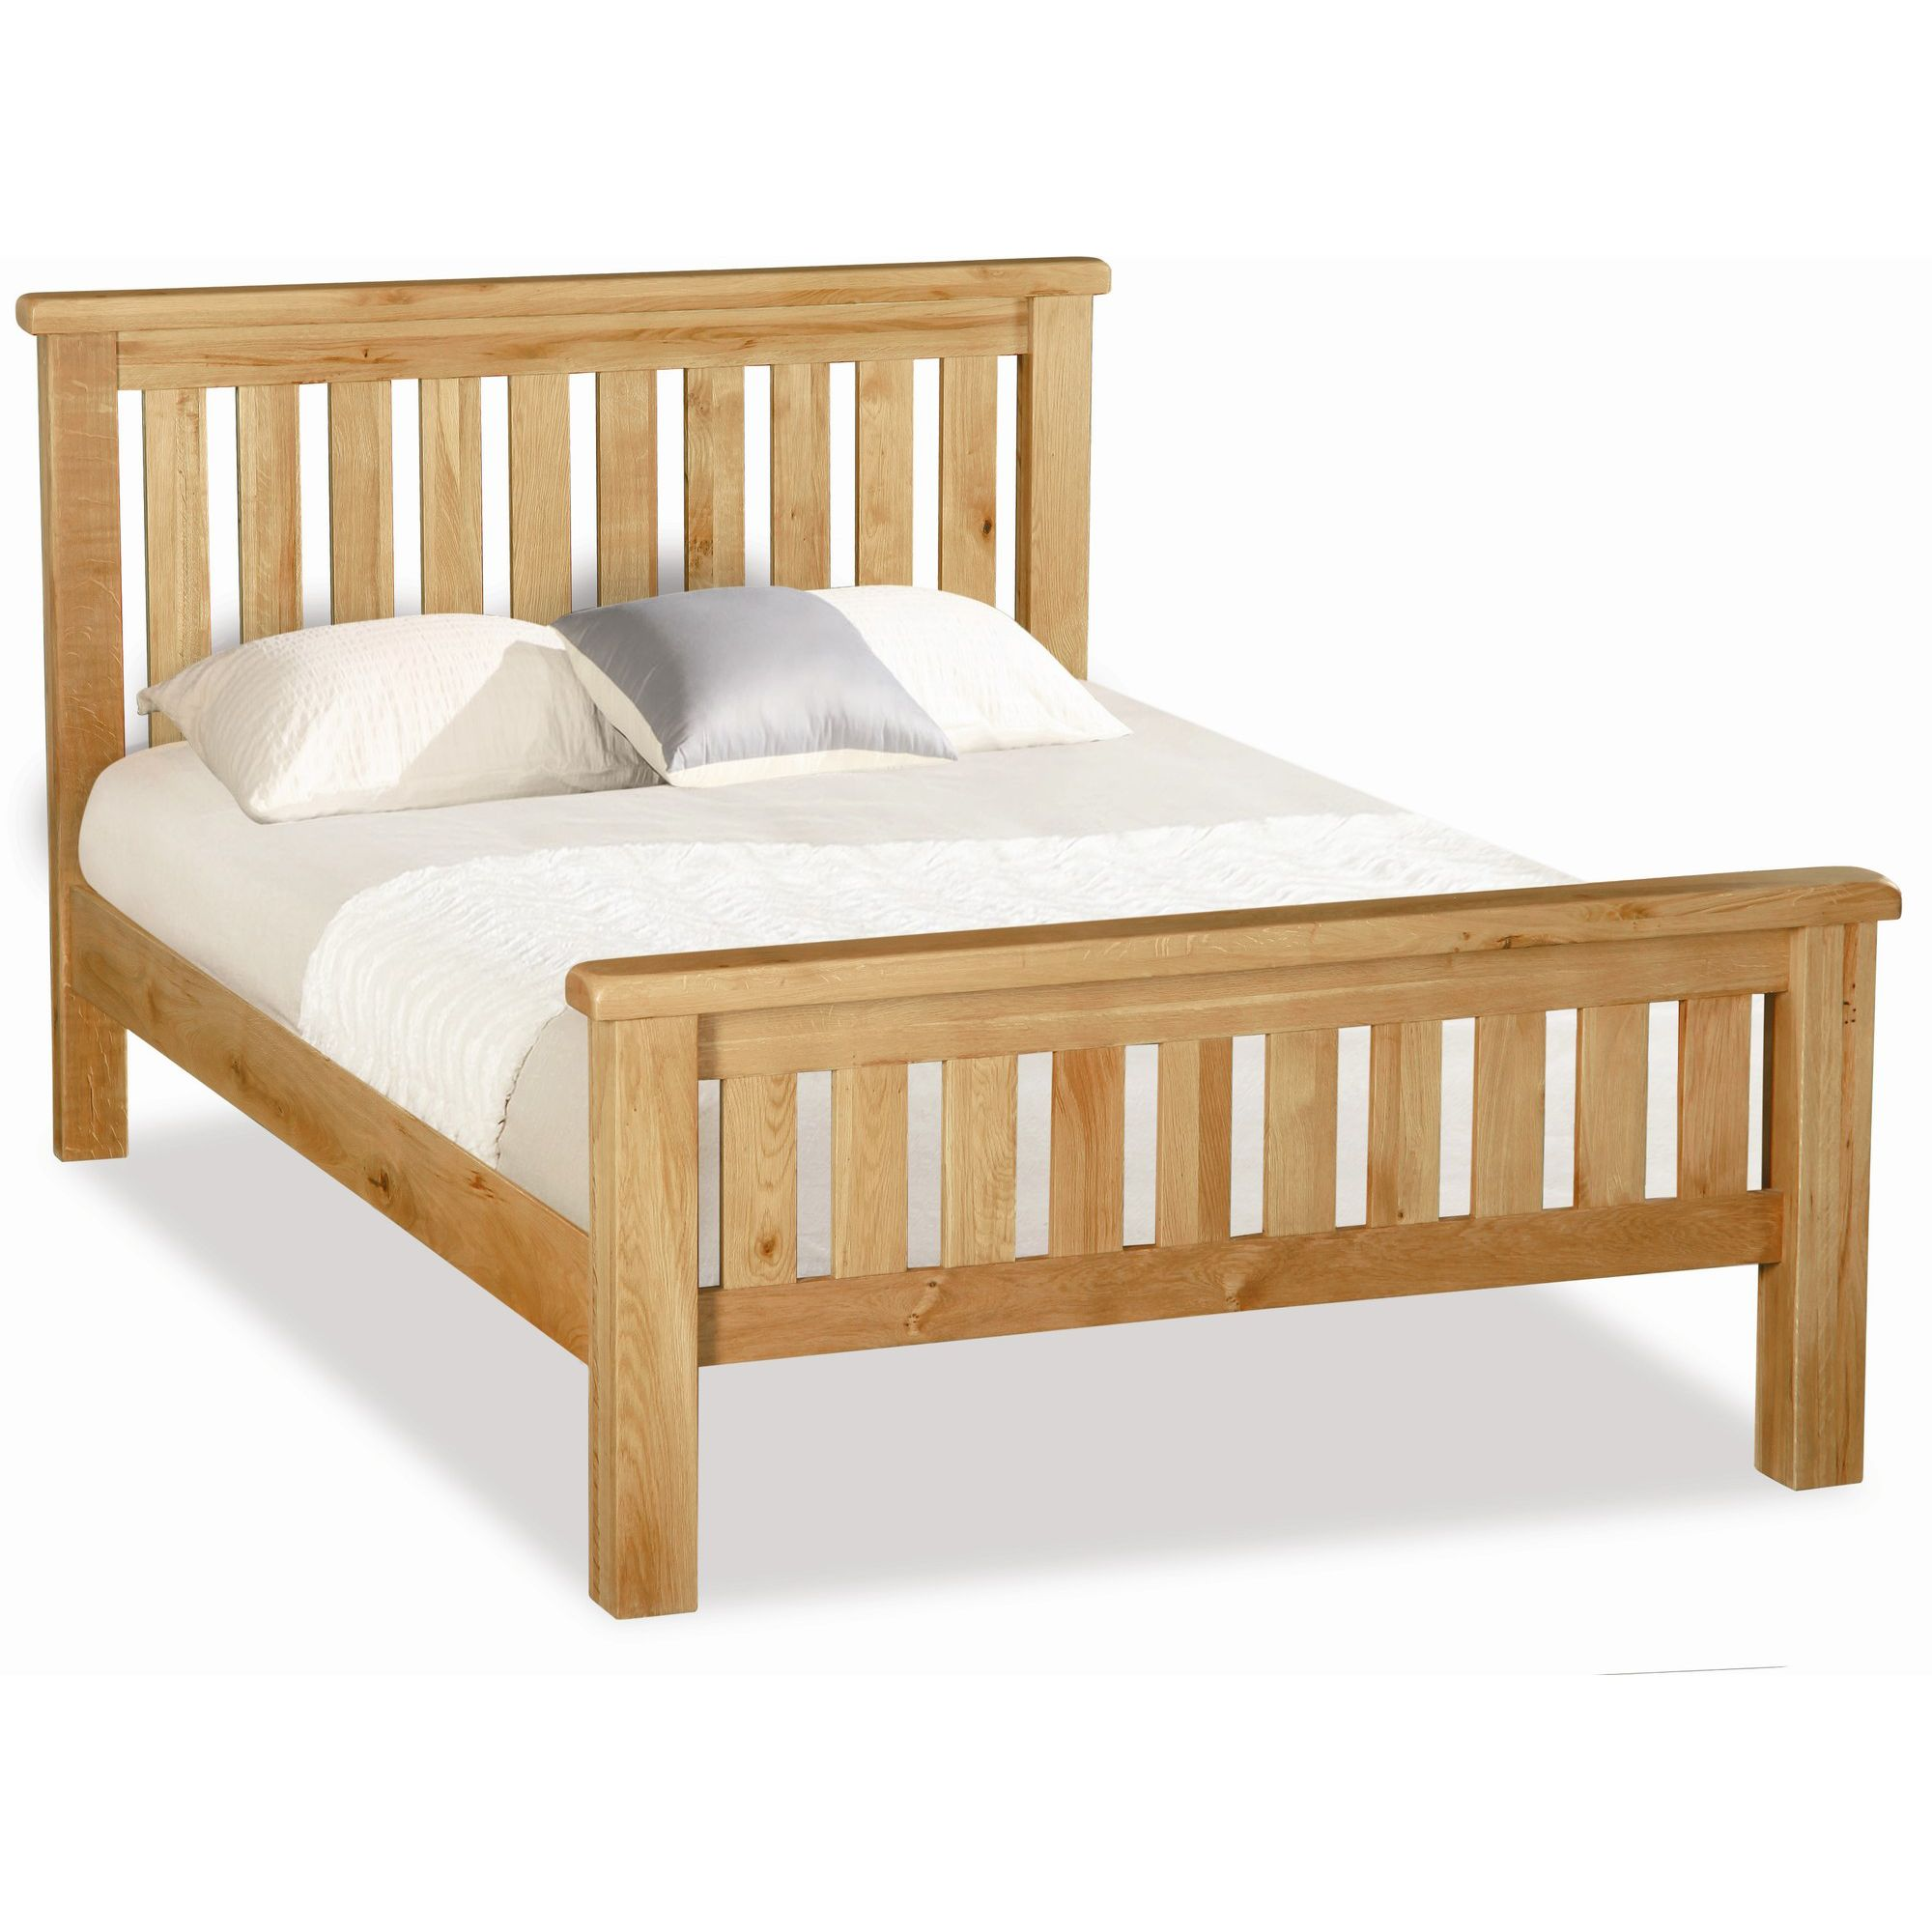 Alterton Furniture Pemberley Slatted Bed - Double at Tesco Direct